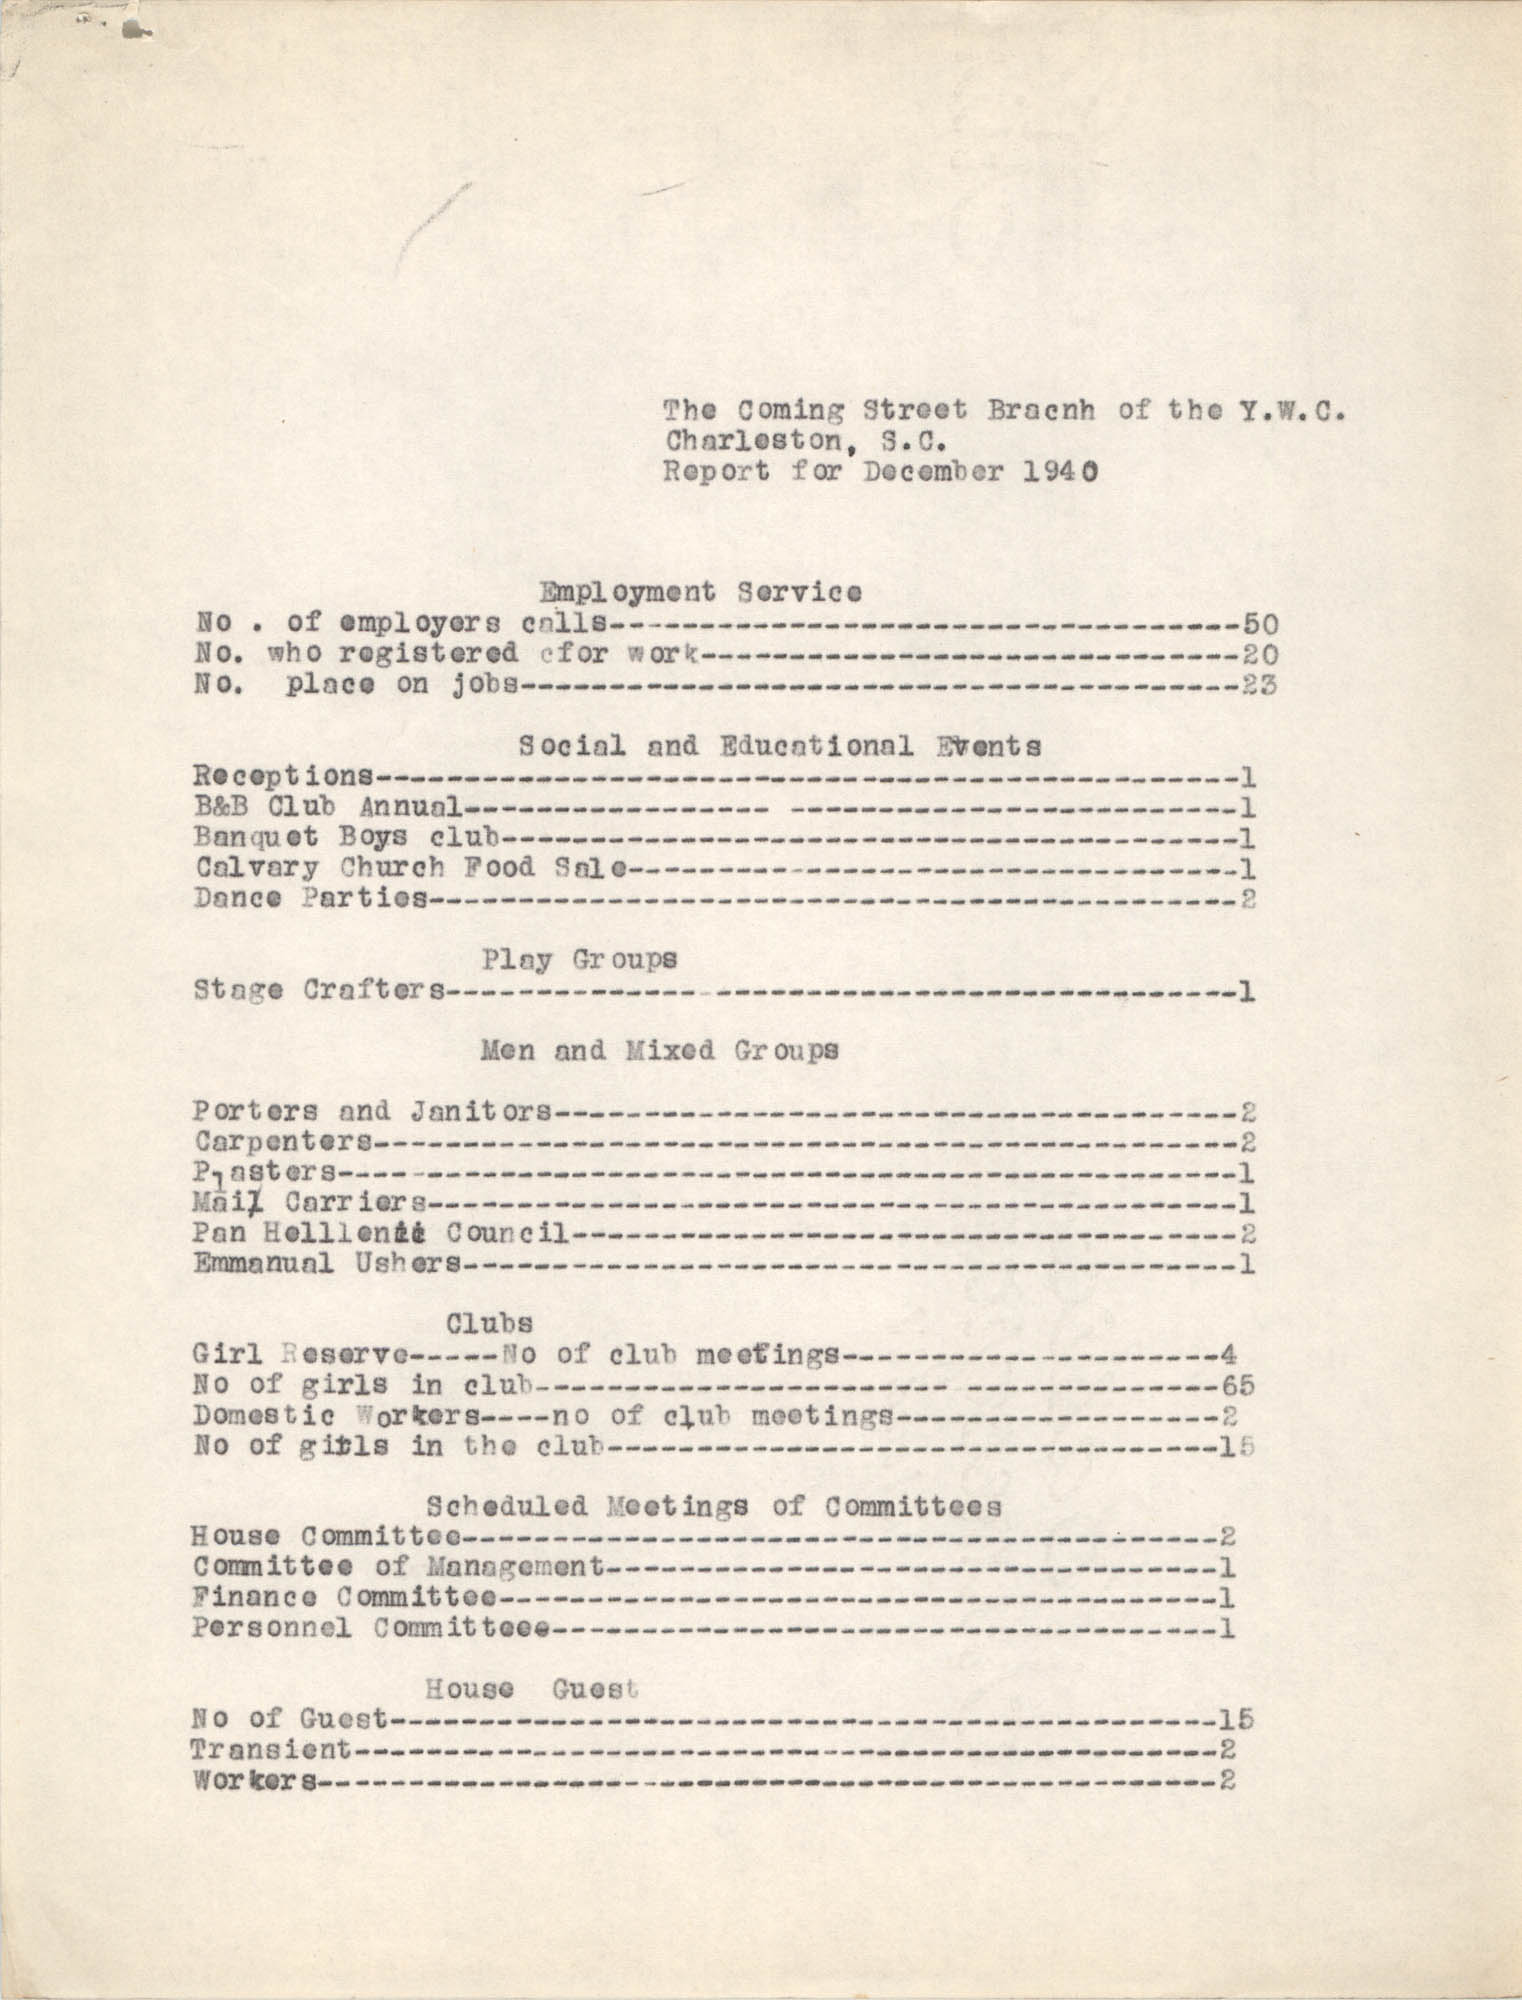 Monthly Report for the Coming Street Y.W.C.A., Employment and Groups, December 1940